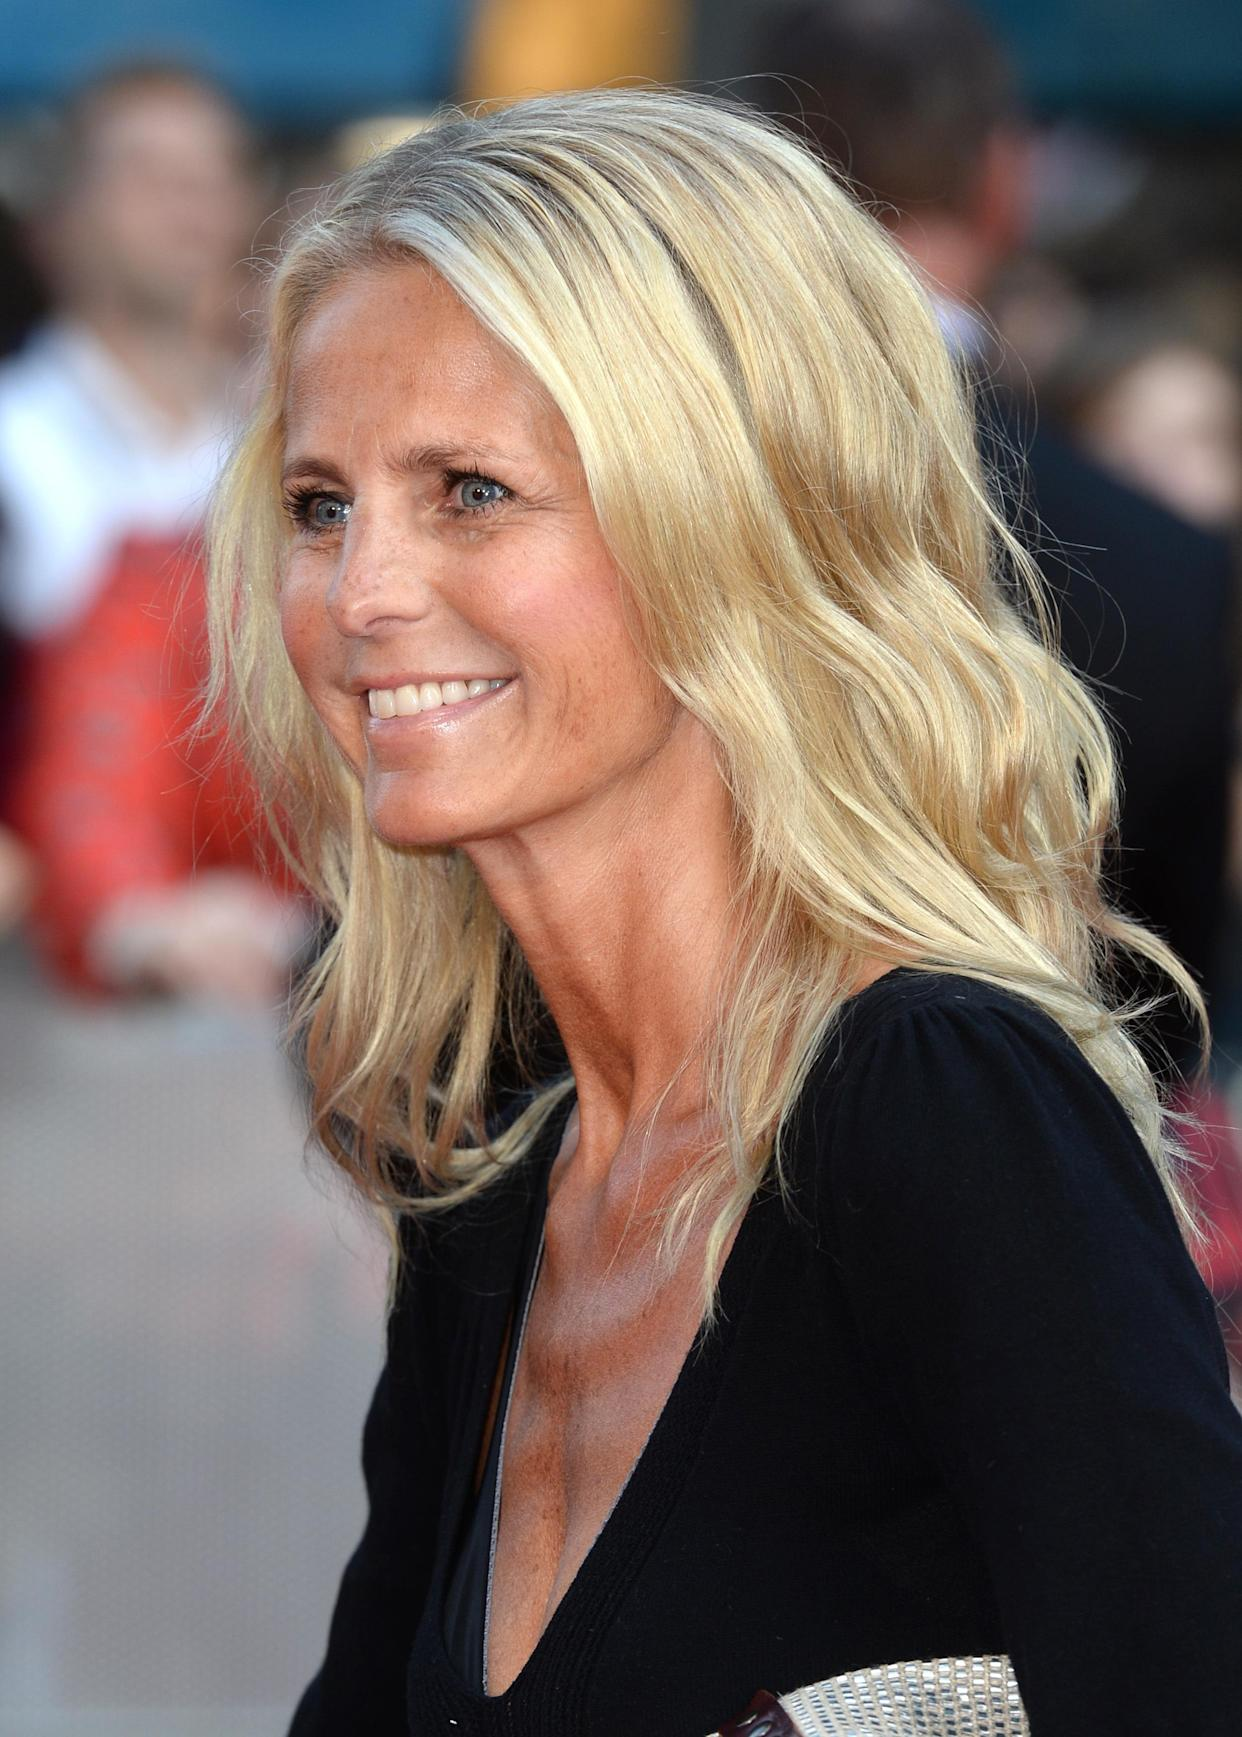 Ulrika Jonsson attending the UK Premiere of This Is Us, Odeon Cinema, Leicester Square, London.